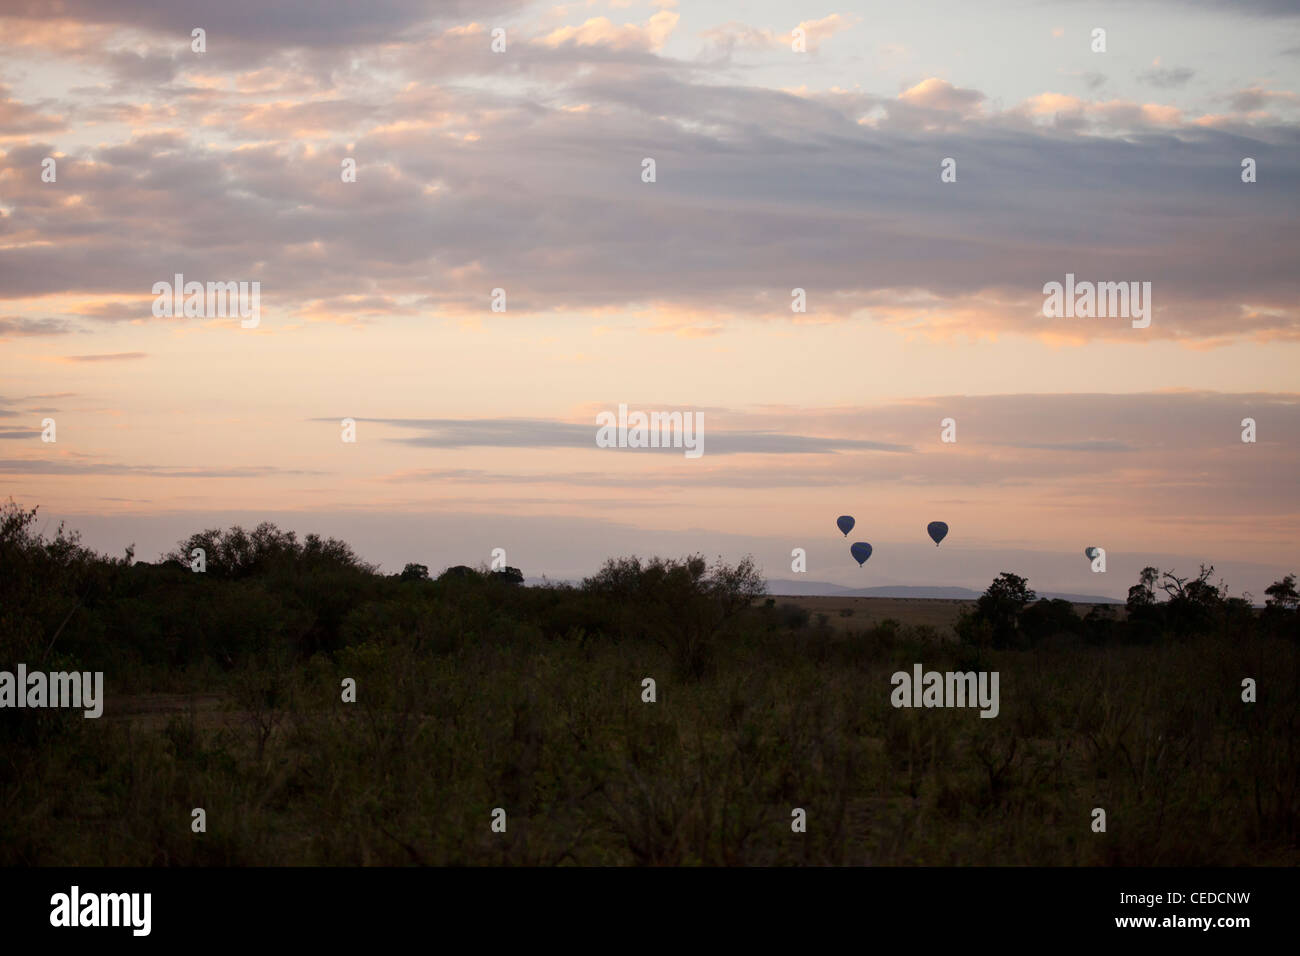 Kenya - Masai Mara game reserve -  Early Morning Landscape - Stock Image